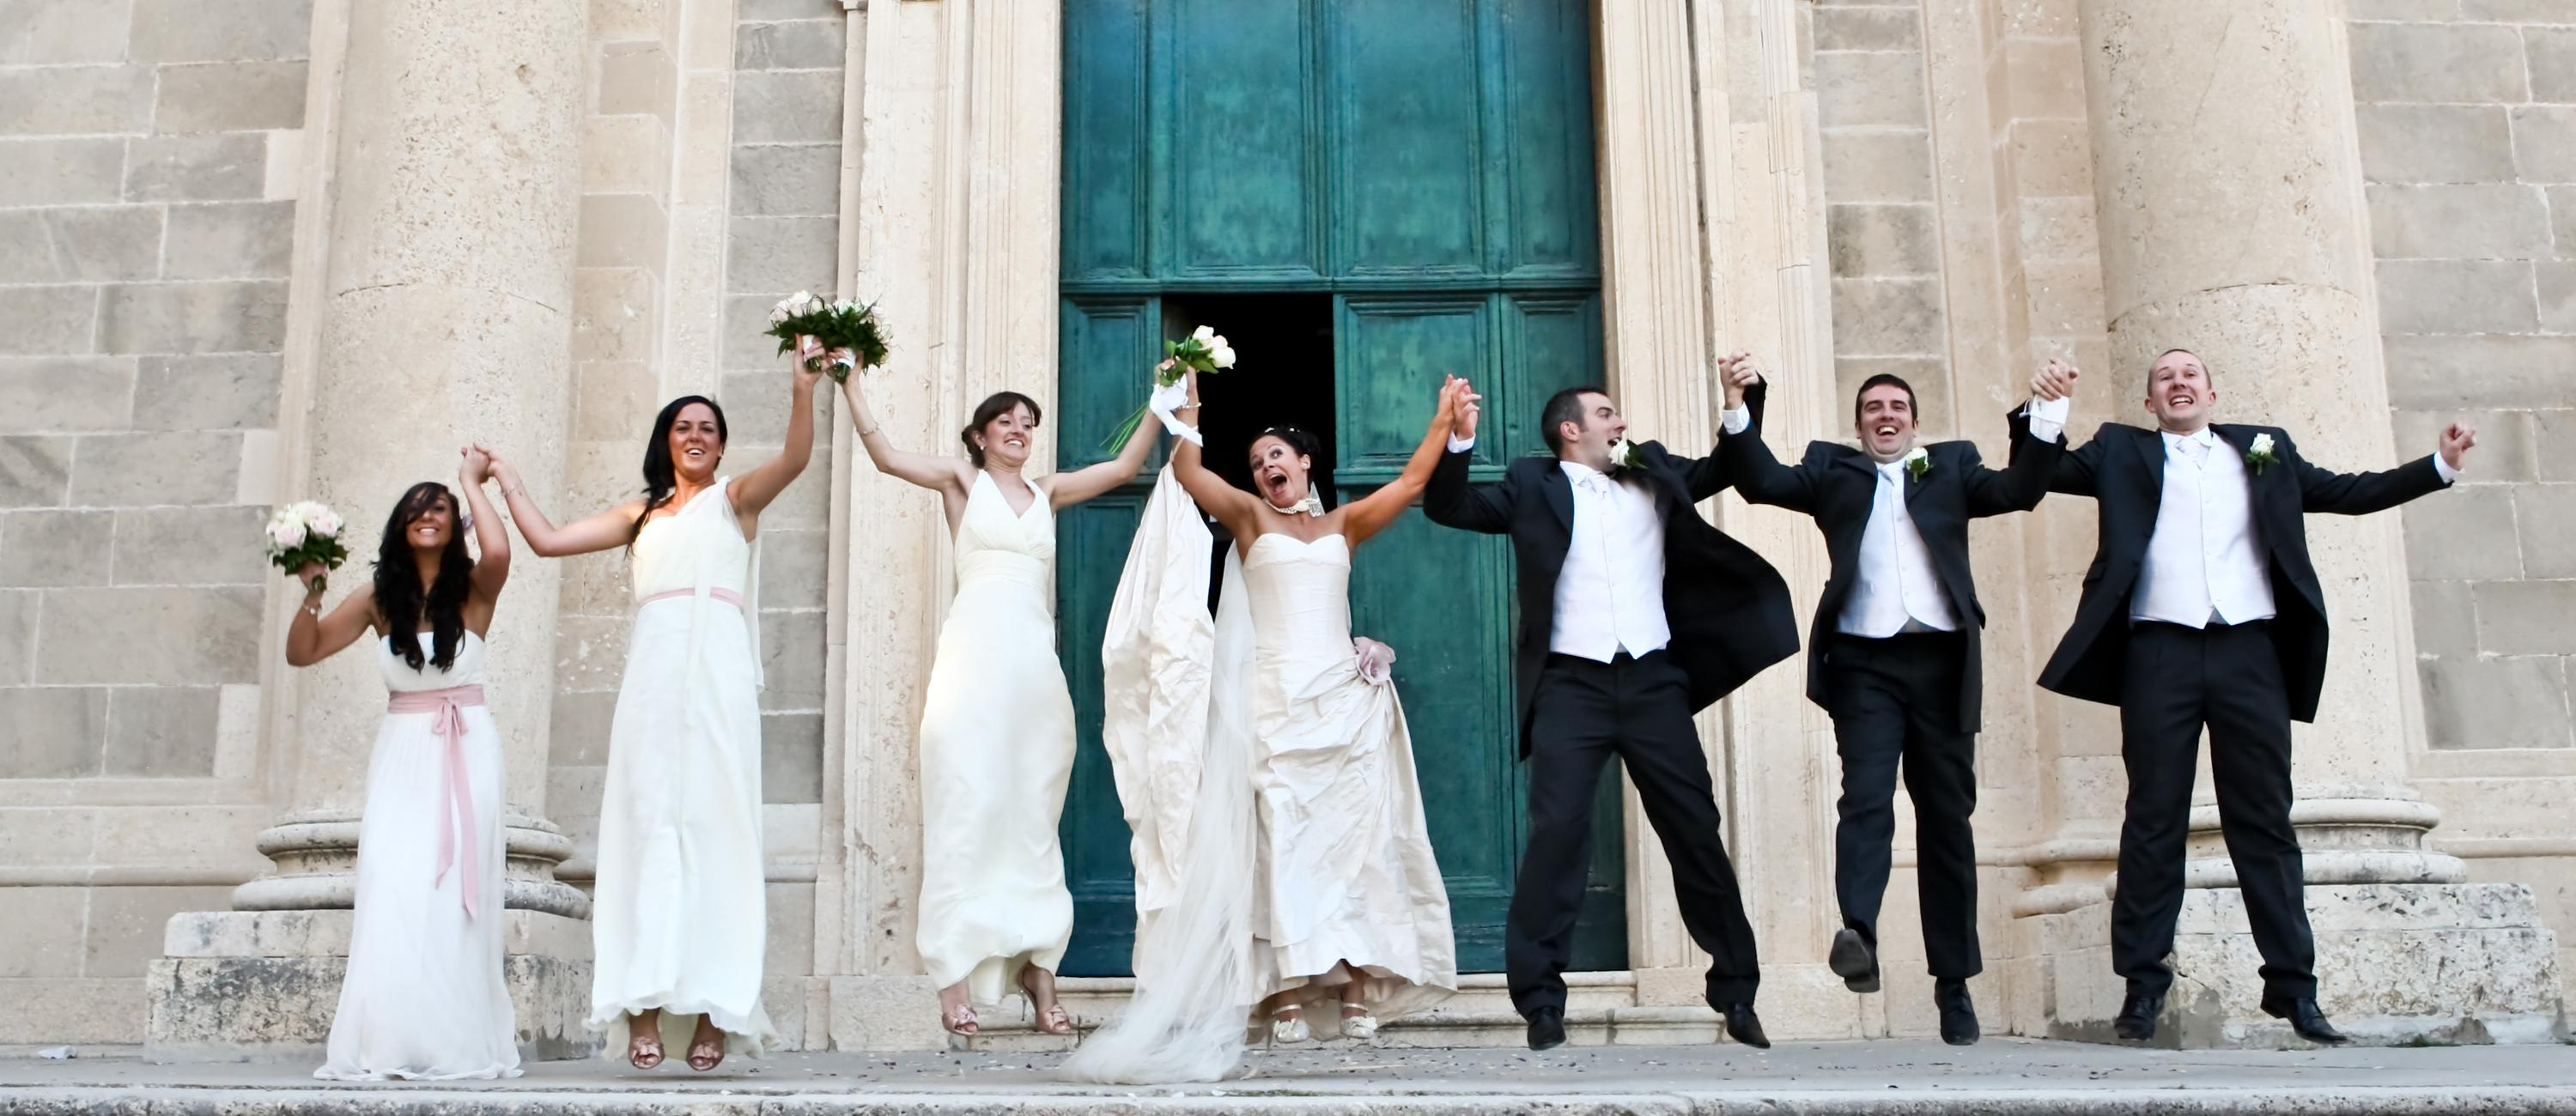 Luxury wedding in Dubrovnik